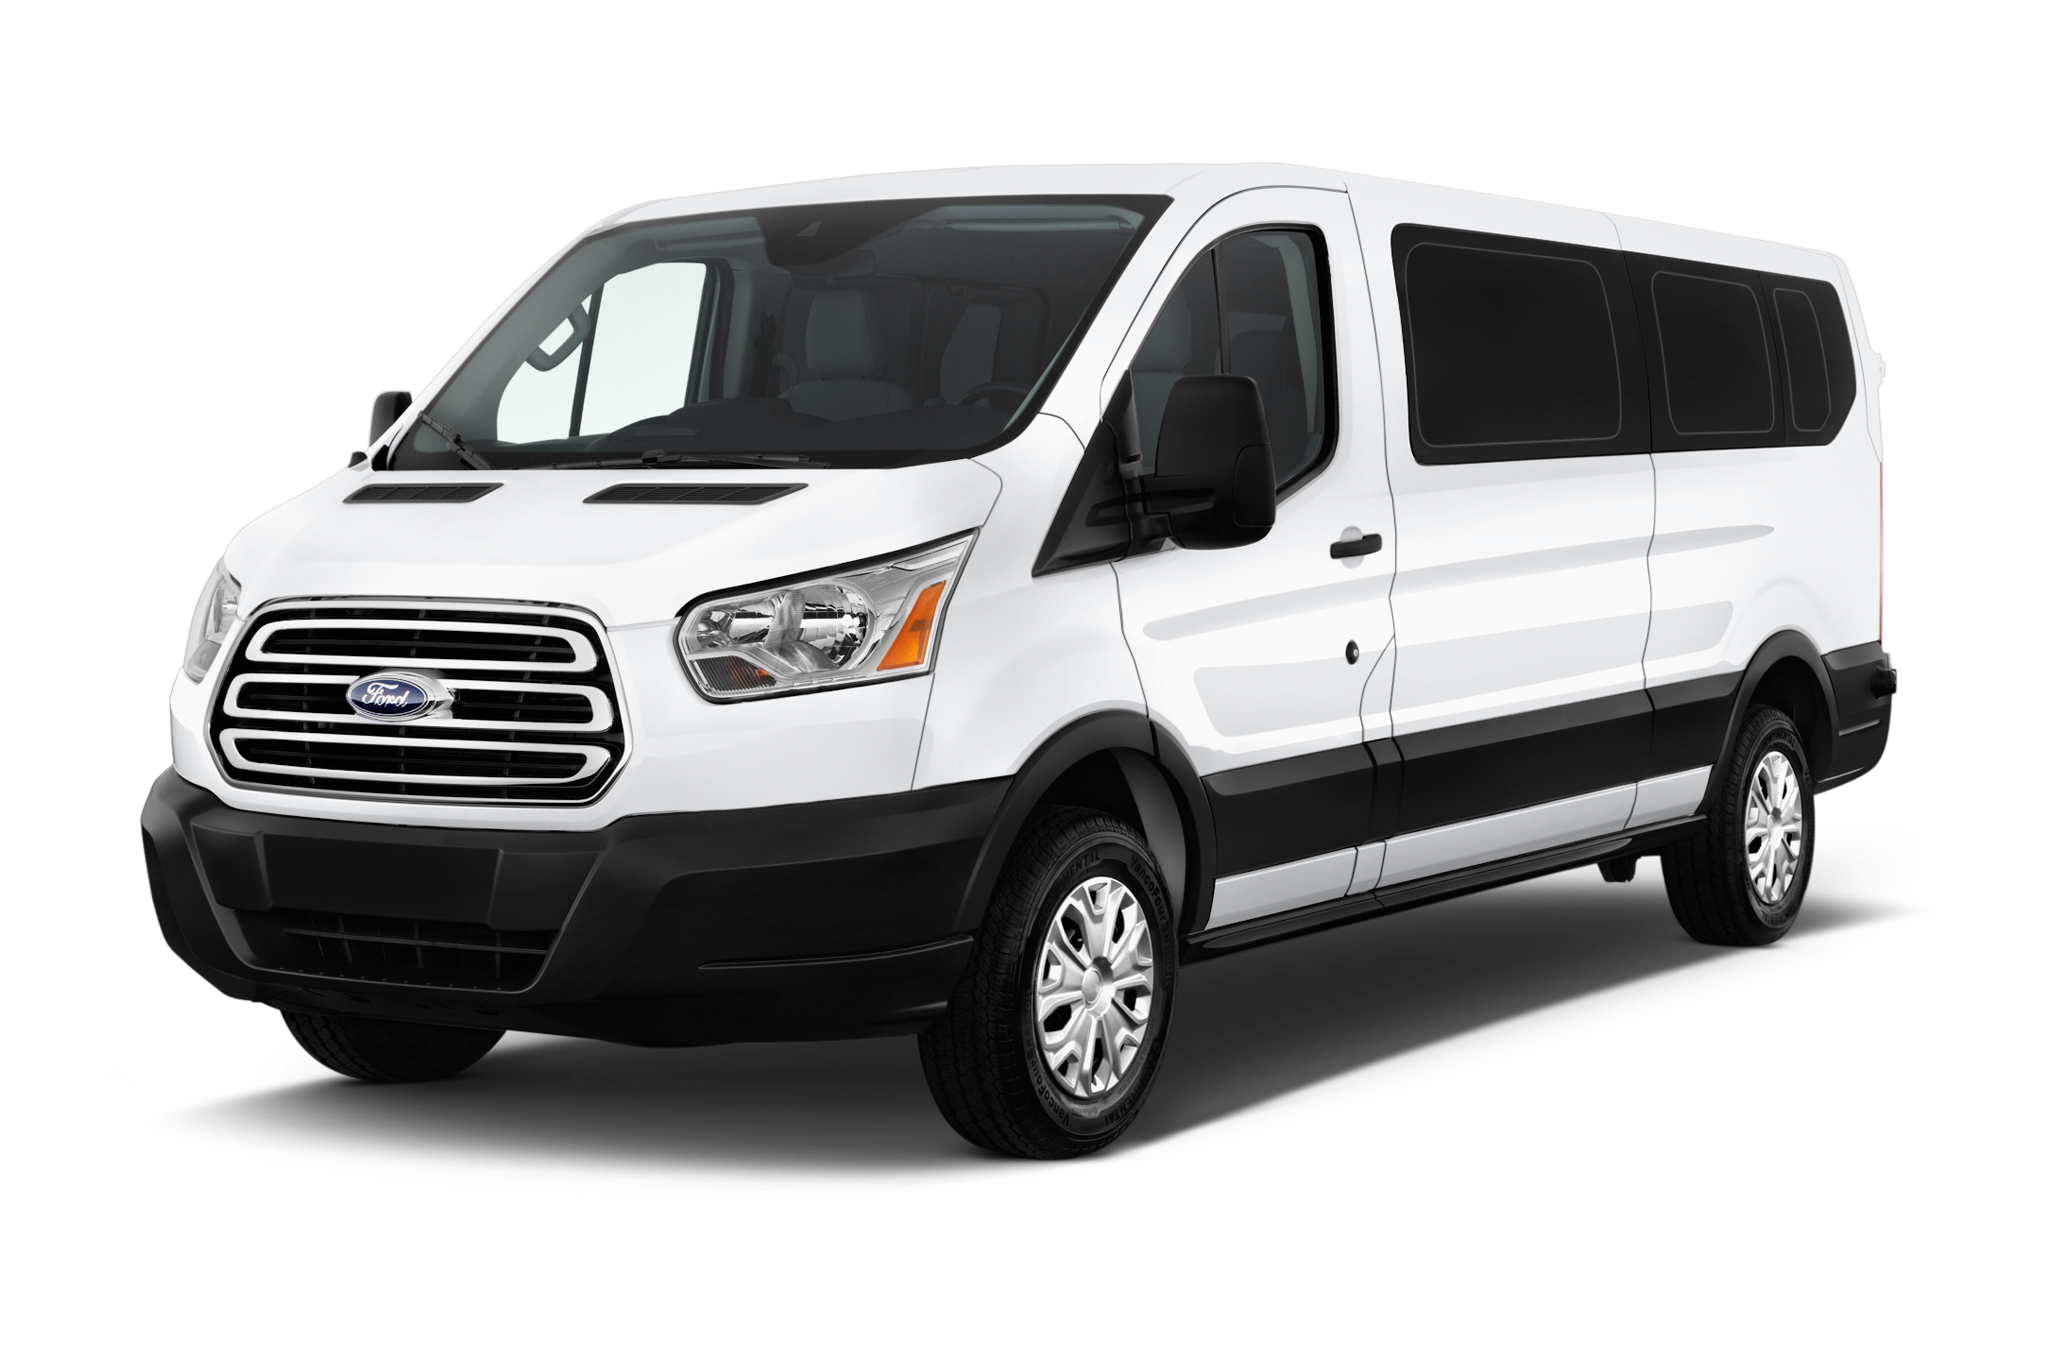 2017 Ford Transit 350 Xlt Low Roof Wagon Angular Front Www Yeehaw Ca